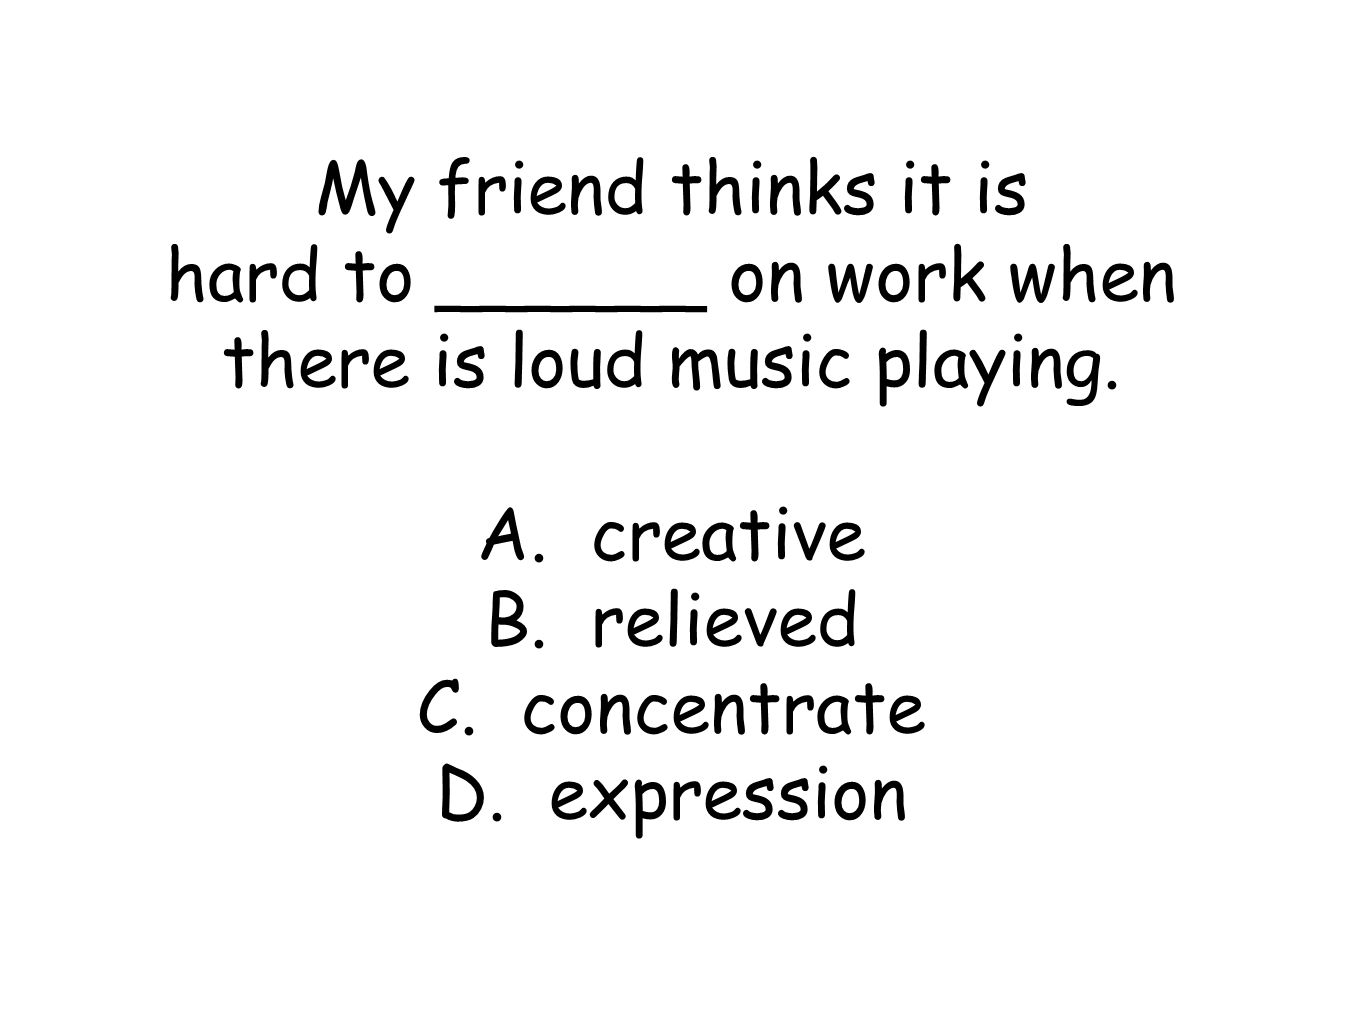 My friend thinks it is hard to ______ on work when there is loud music playing.